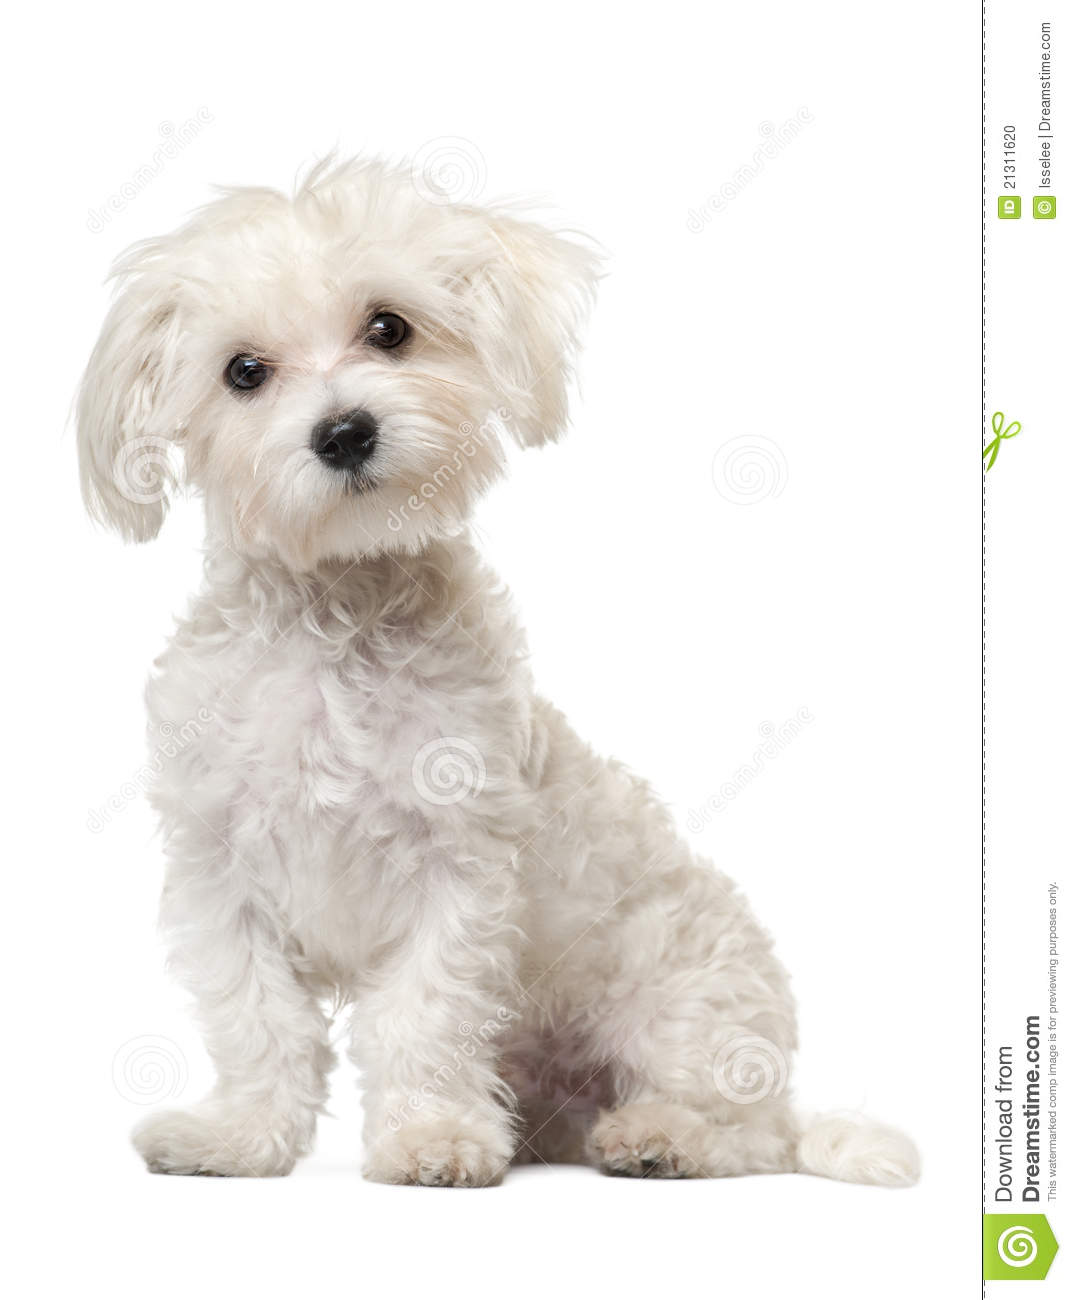 maltese dog clipart - photo #12